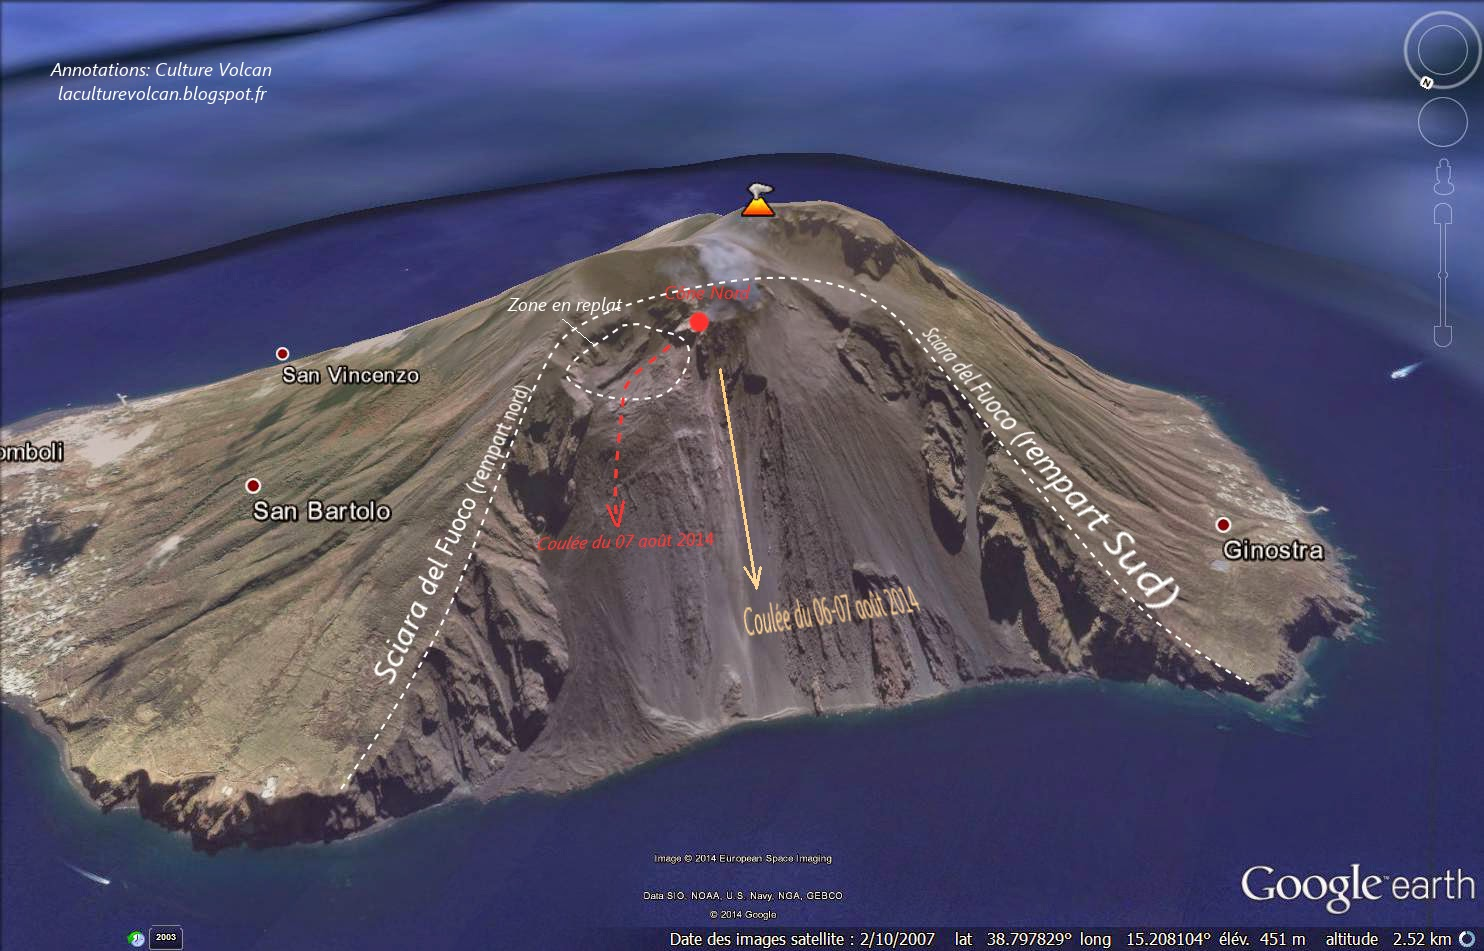 Topography of yesterday's and this morning's lava flows of Stromboli